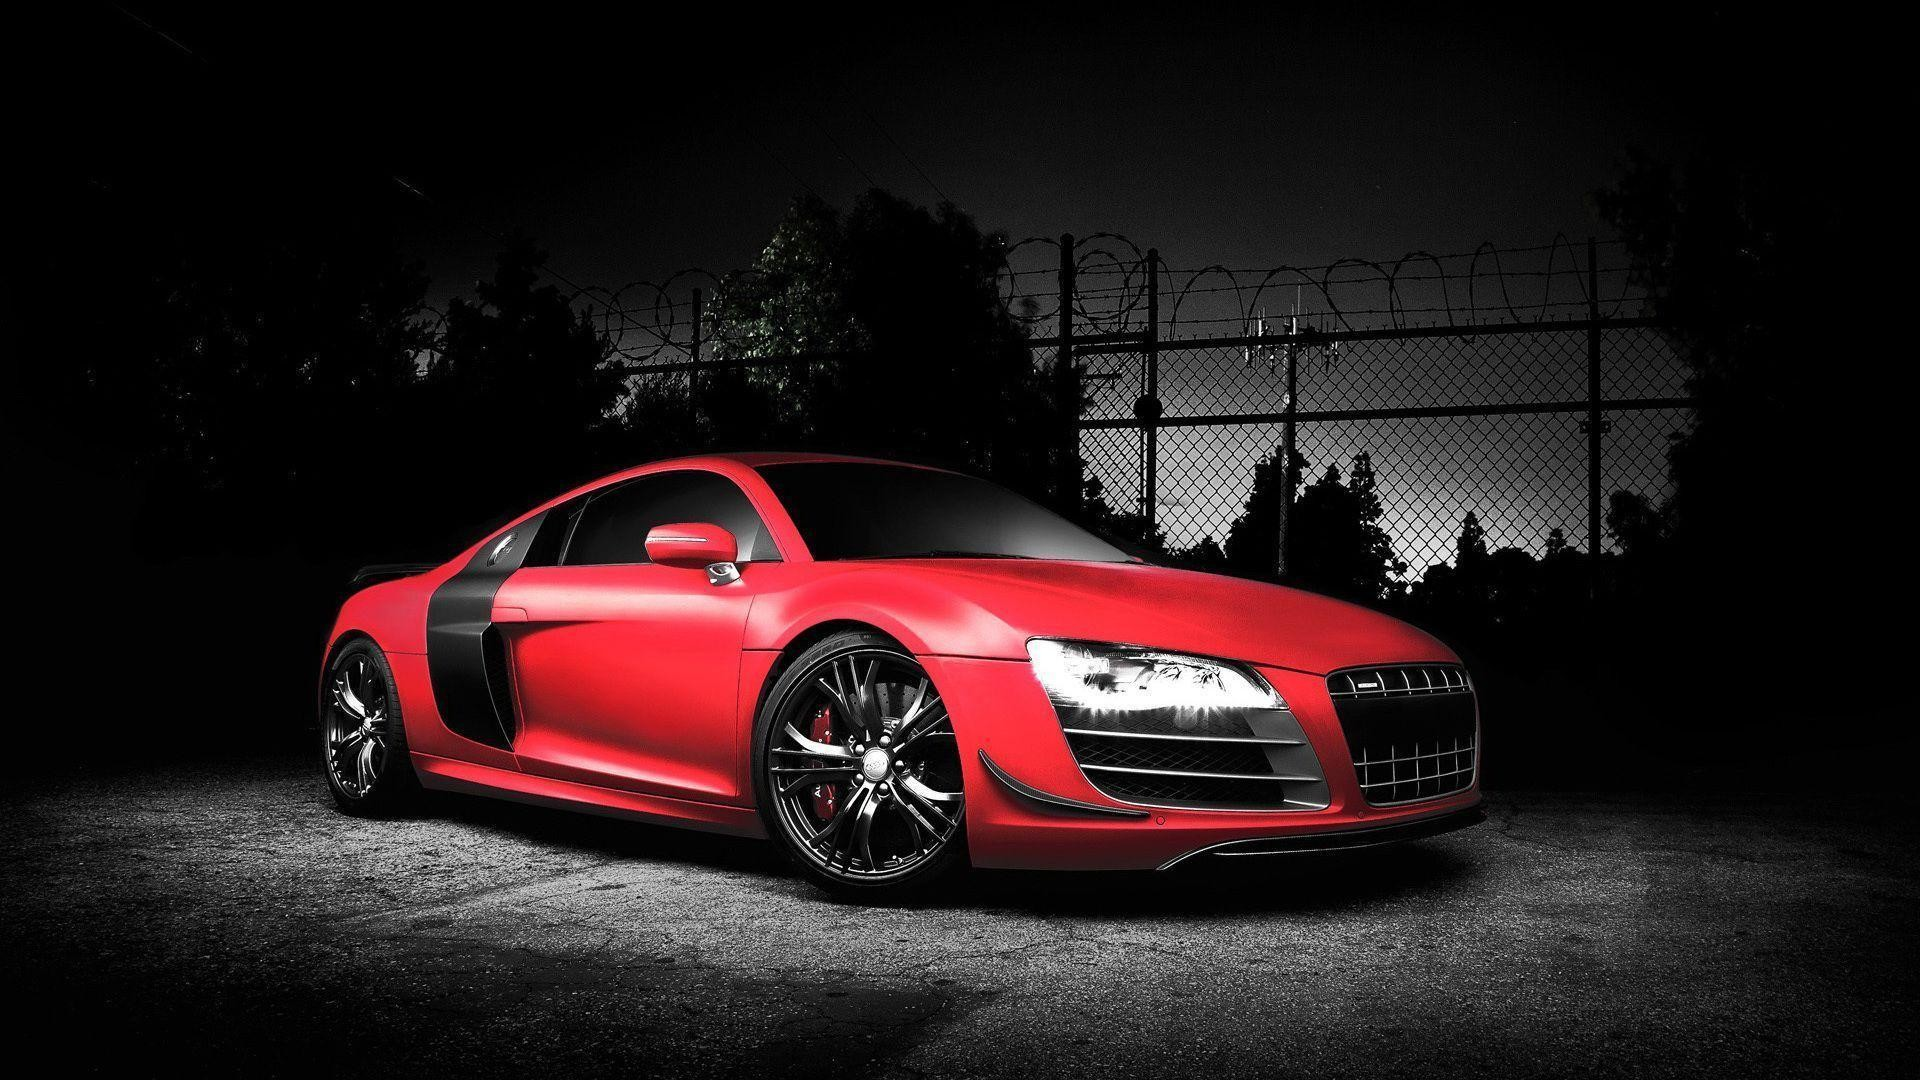 1920x1080 Audi Car Wallpaper Red Color | HD Wallpapers | Desktop Wallpapers